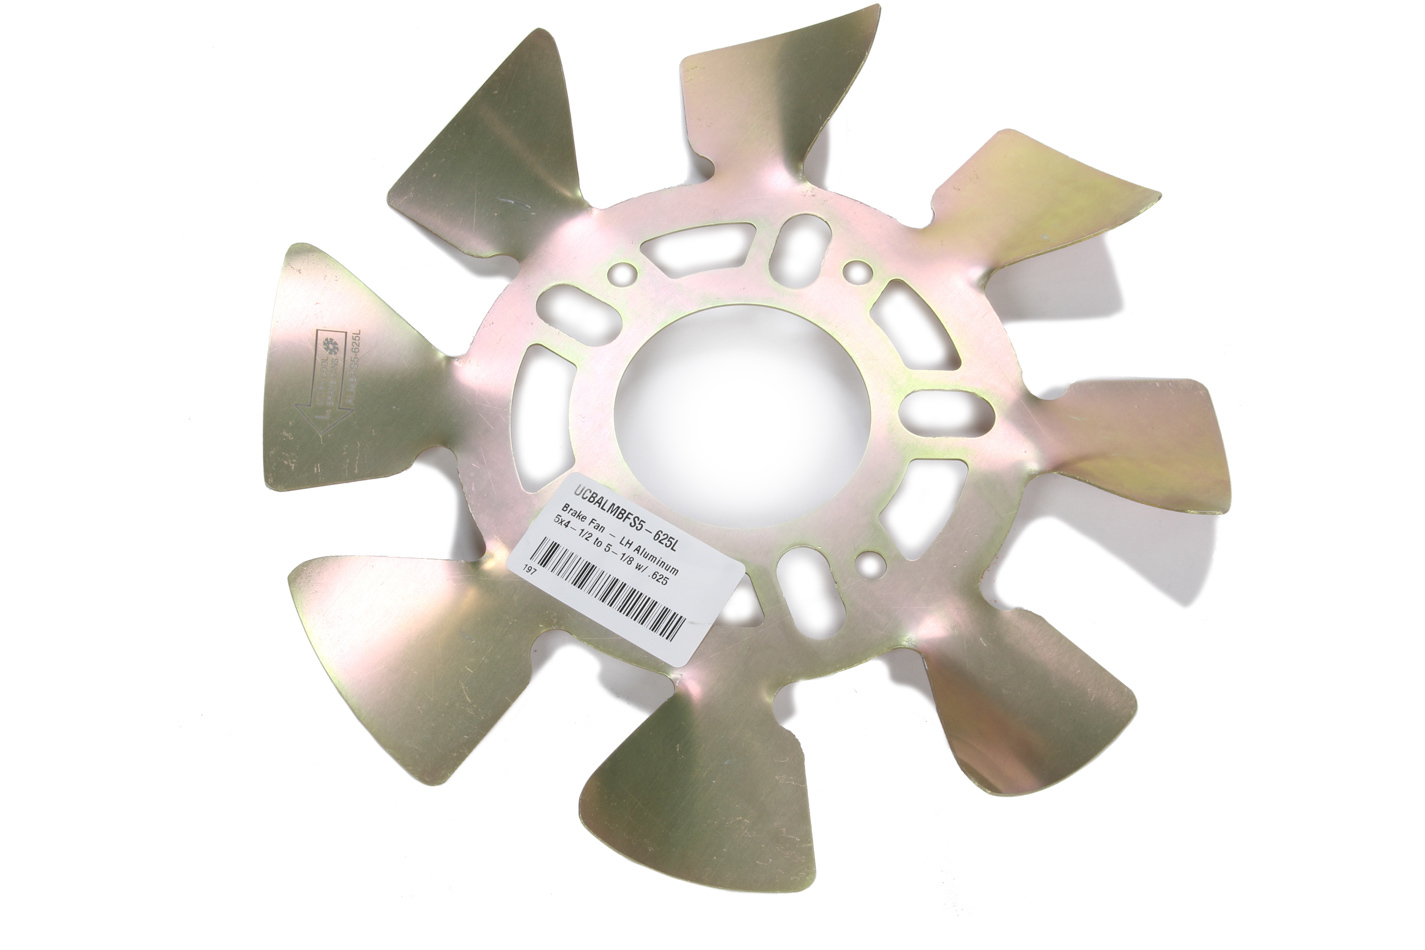 Ultra Cool Brake Fans ALMBFS5-625L Brake Cooling Fan, Driver Side, Hub Mounted, 11-1/2 in Diameter, 5 x 4-1/2 to 5-1/8, 5/8 in Studs, Aluminum, Natural, Each